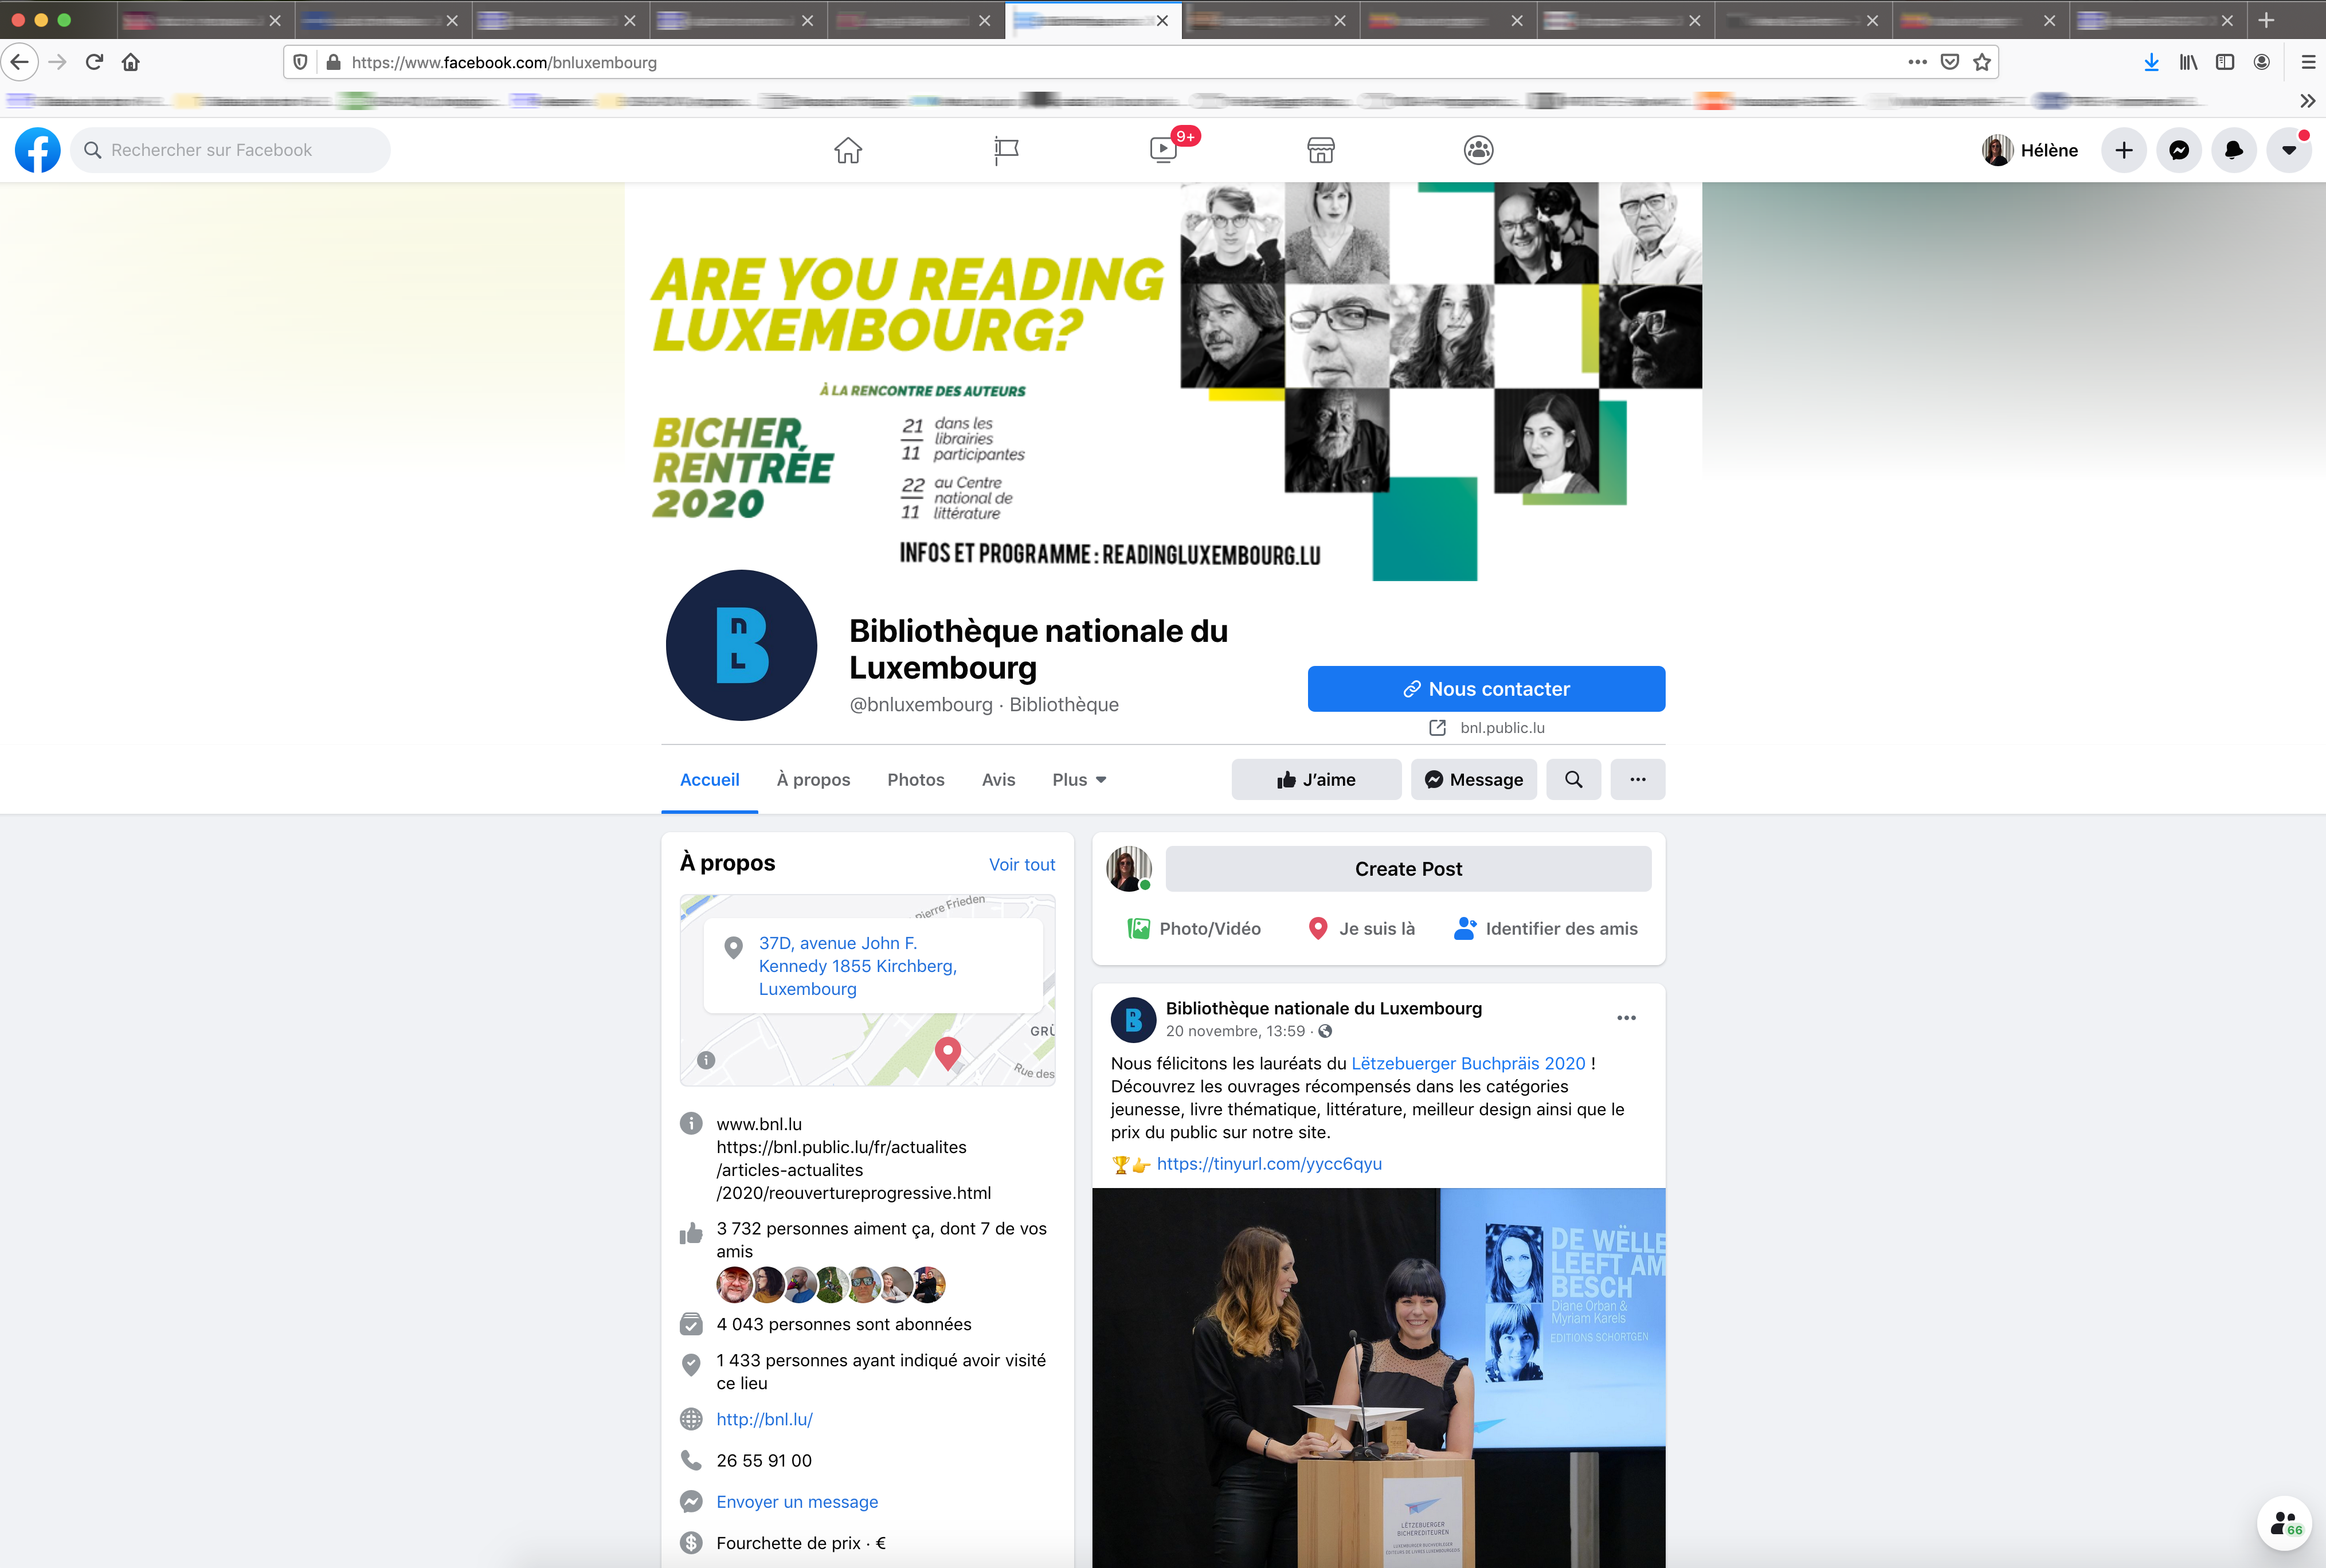 campagne Reading luxembourg facebook